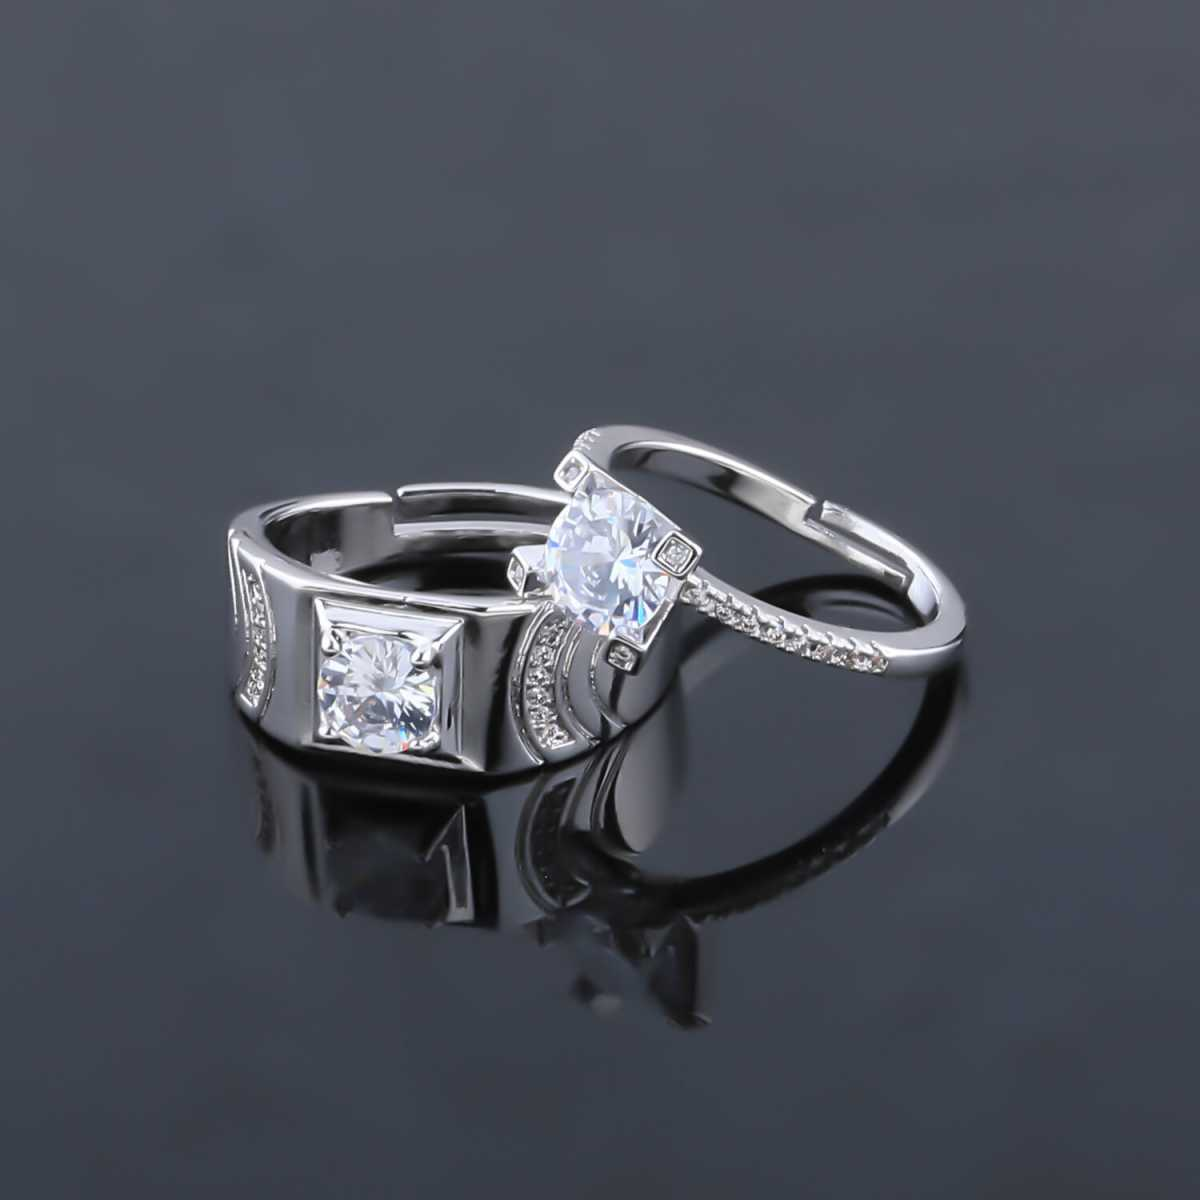 SILVERSHINE,silver plated simple soft look ring for women and bear look ring for men,couple ring for men and women.